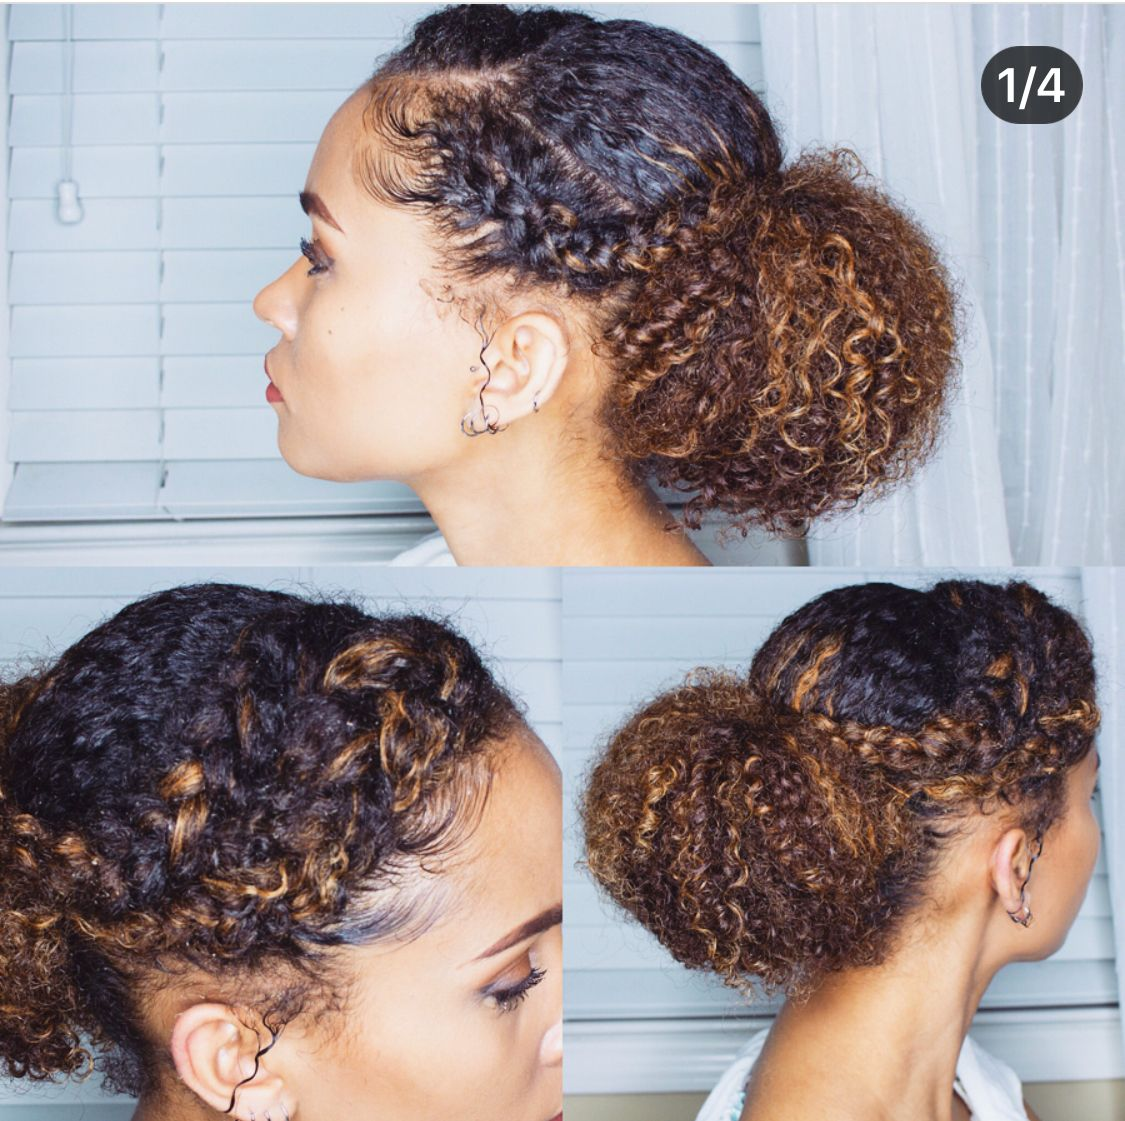 P I N T E R E S T Dboobee Ig 365daysofnaturalhair Natural Hair Bun Styles Naturally Curly Hair Updo Glamorous Hair